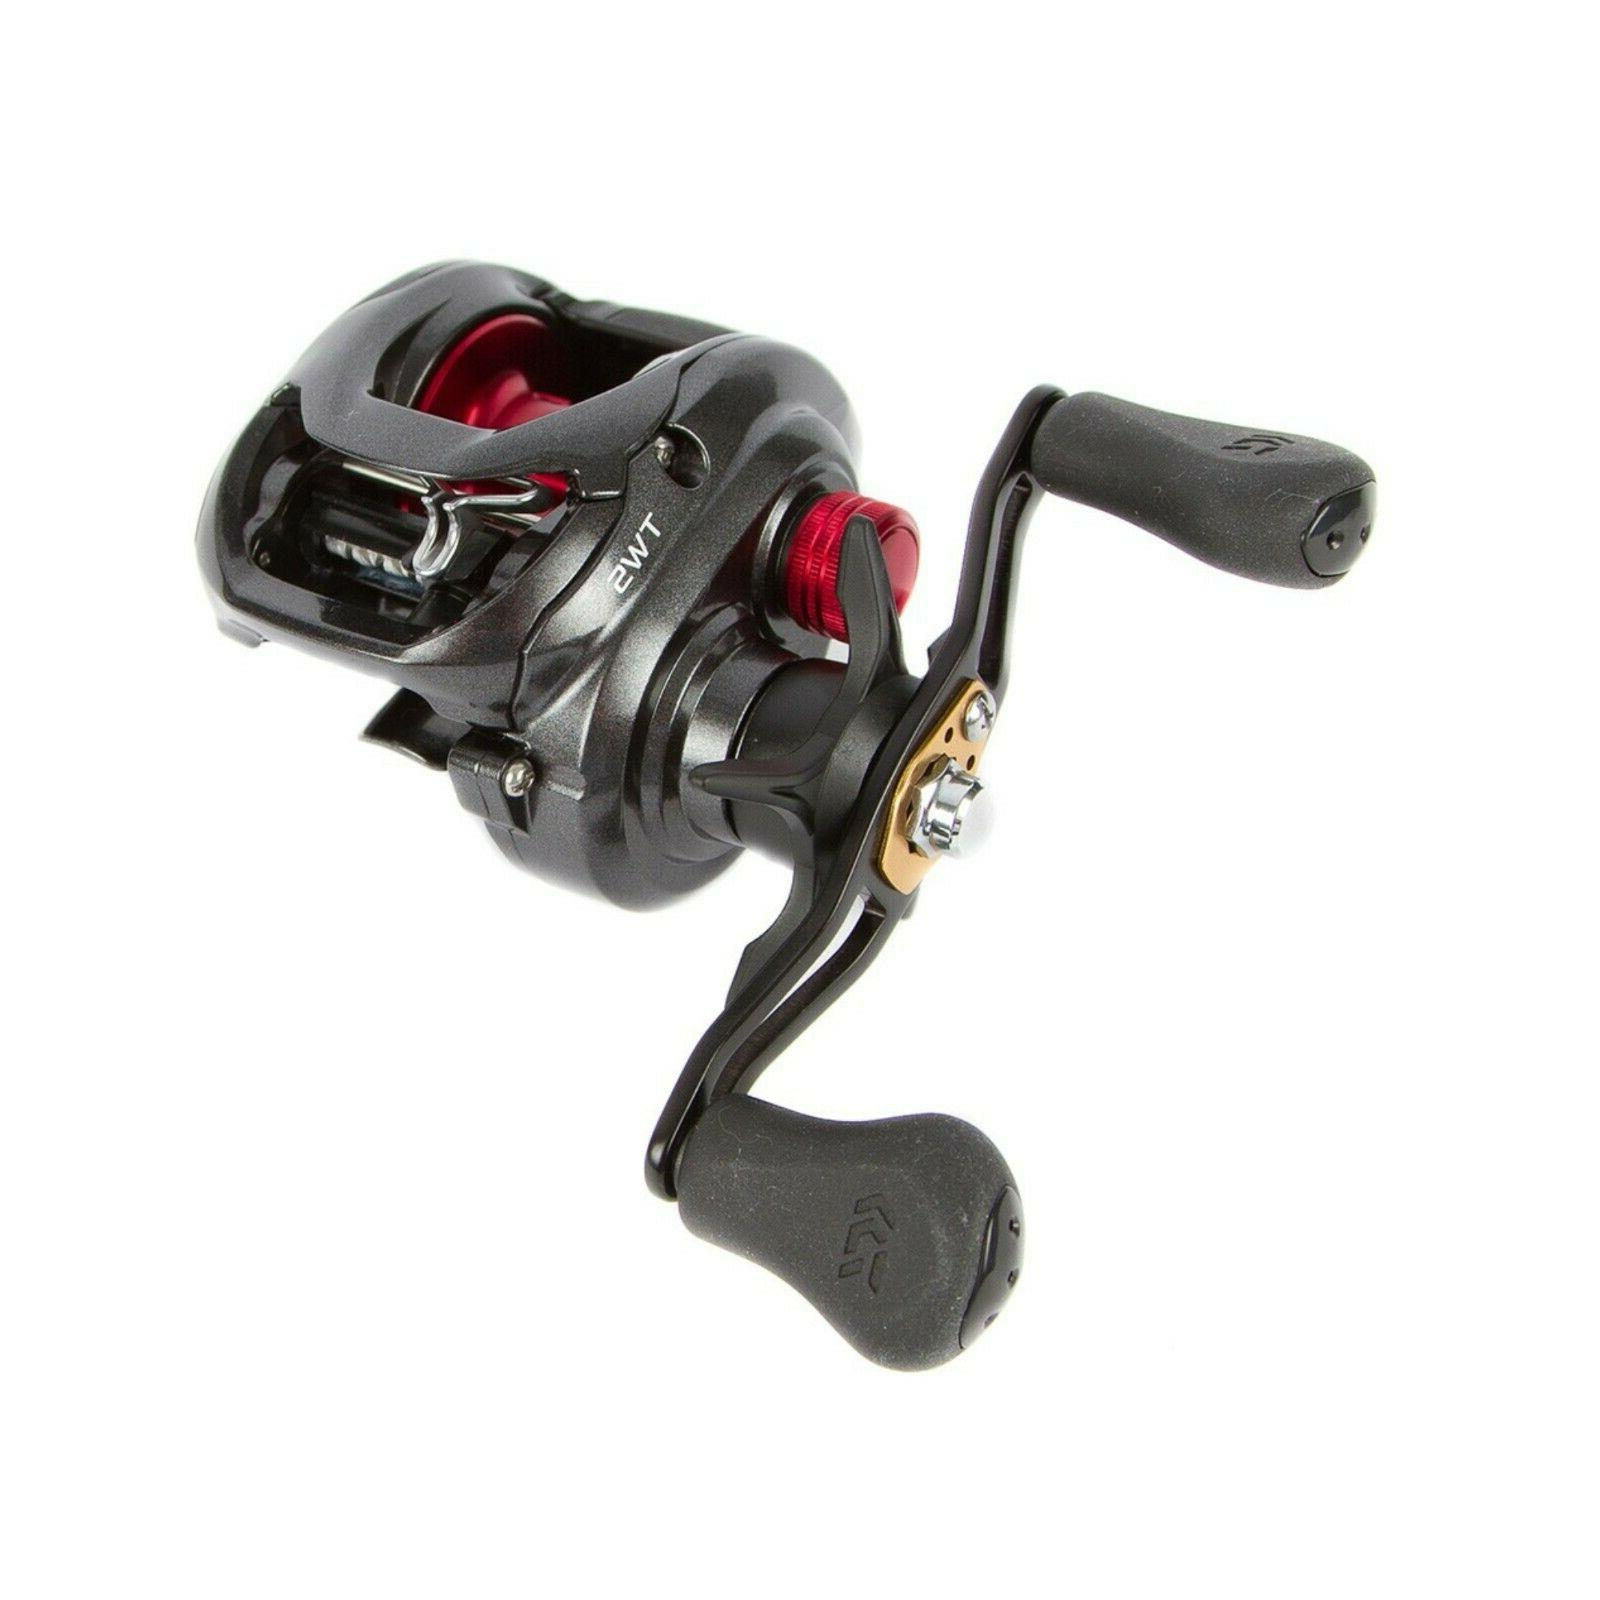 tatula ct baitcast fishing reel